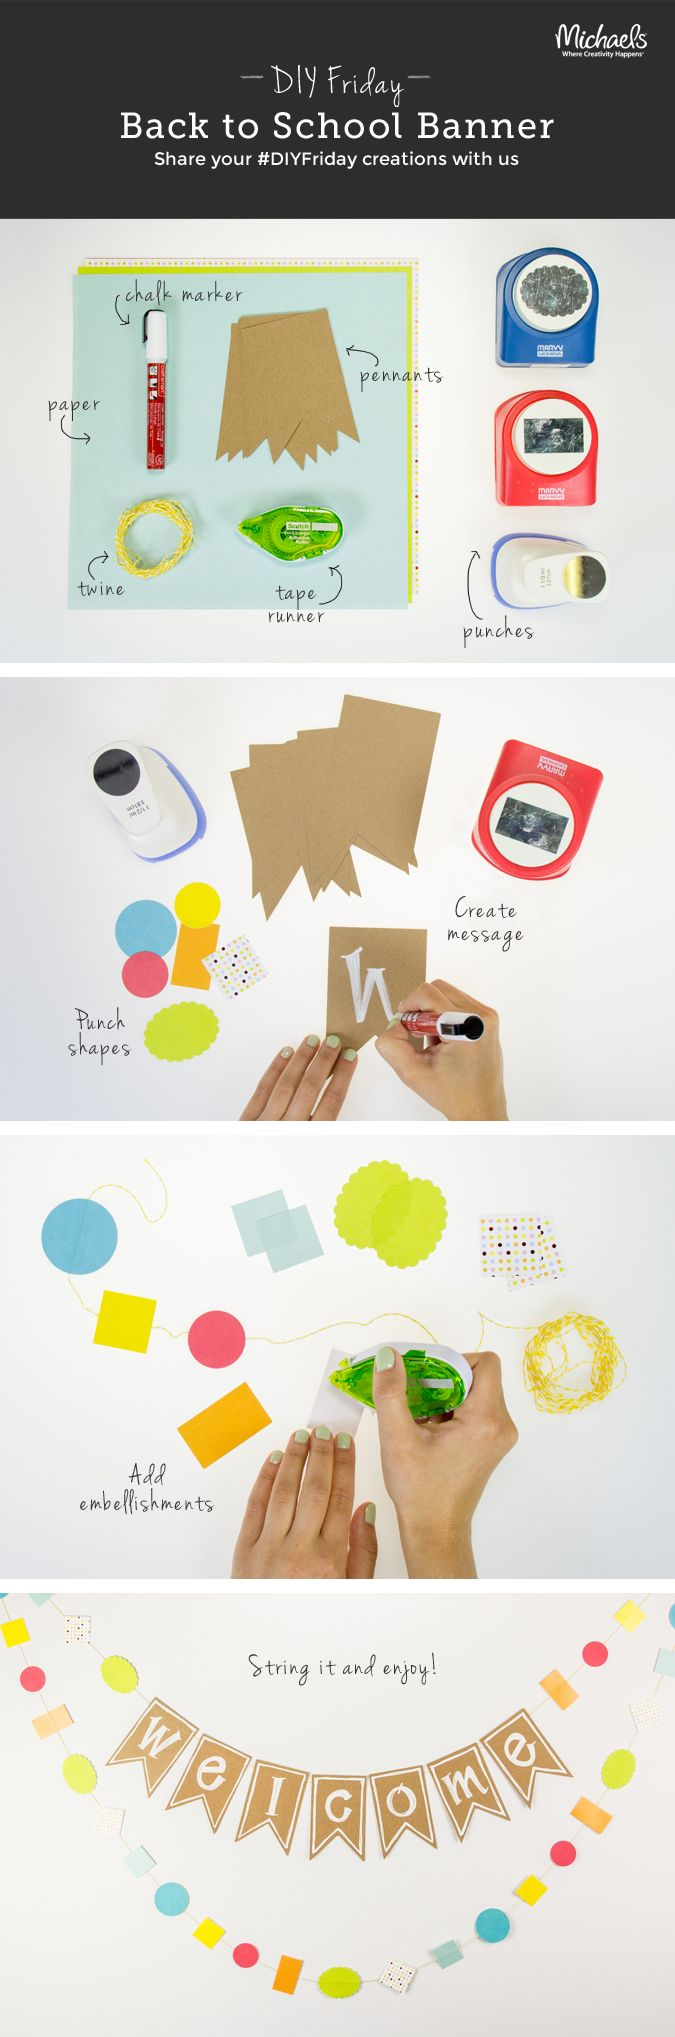 #DIYFriday – 3 easy steps = one fabulous Back to School Banner for the classroom!